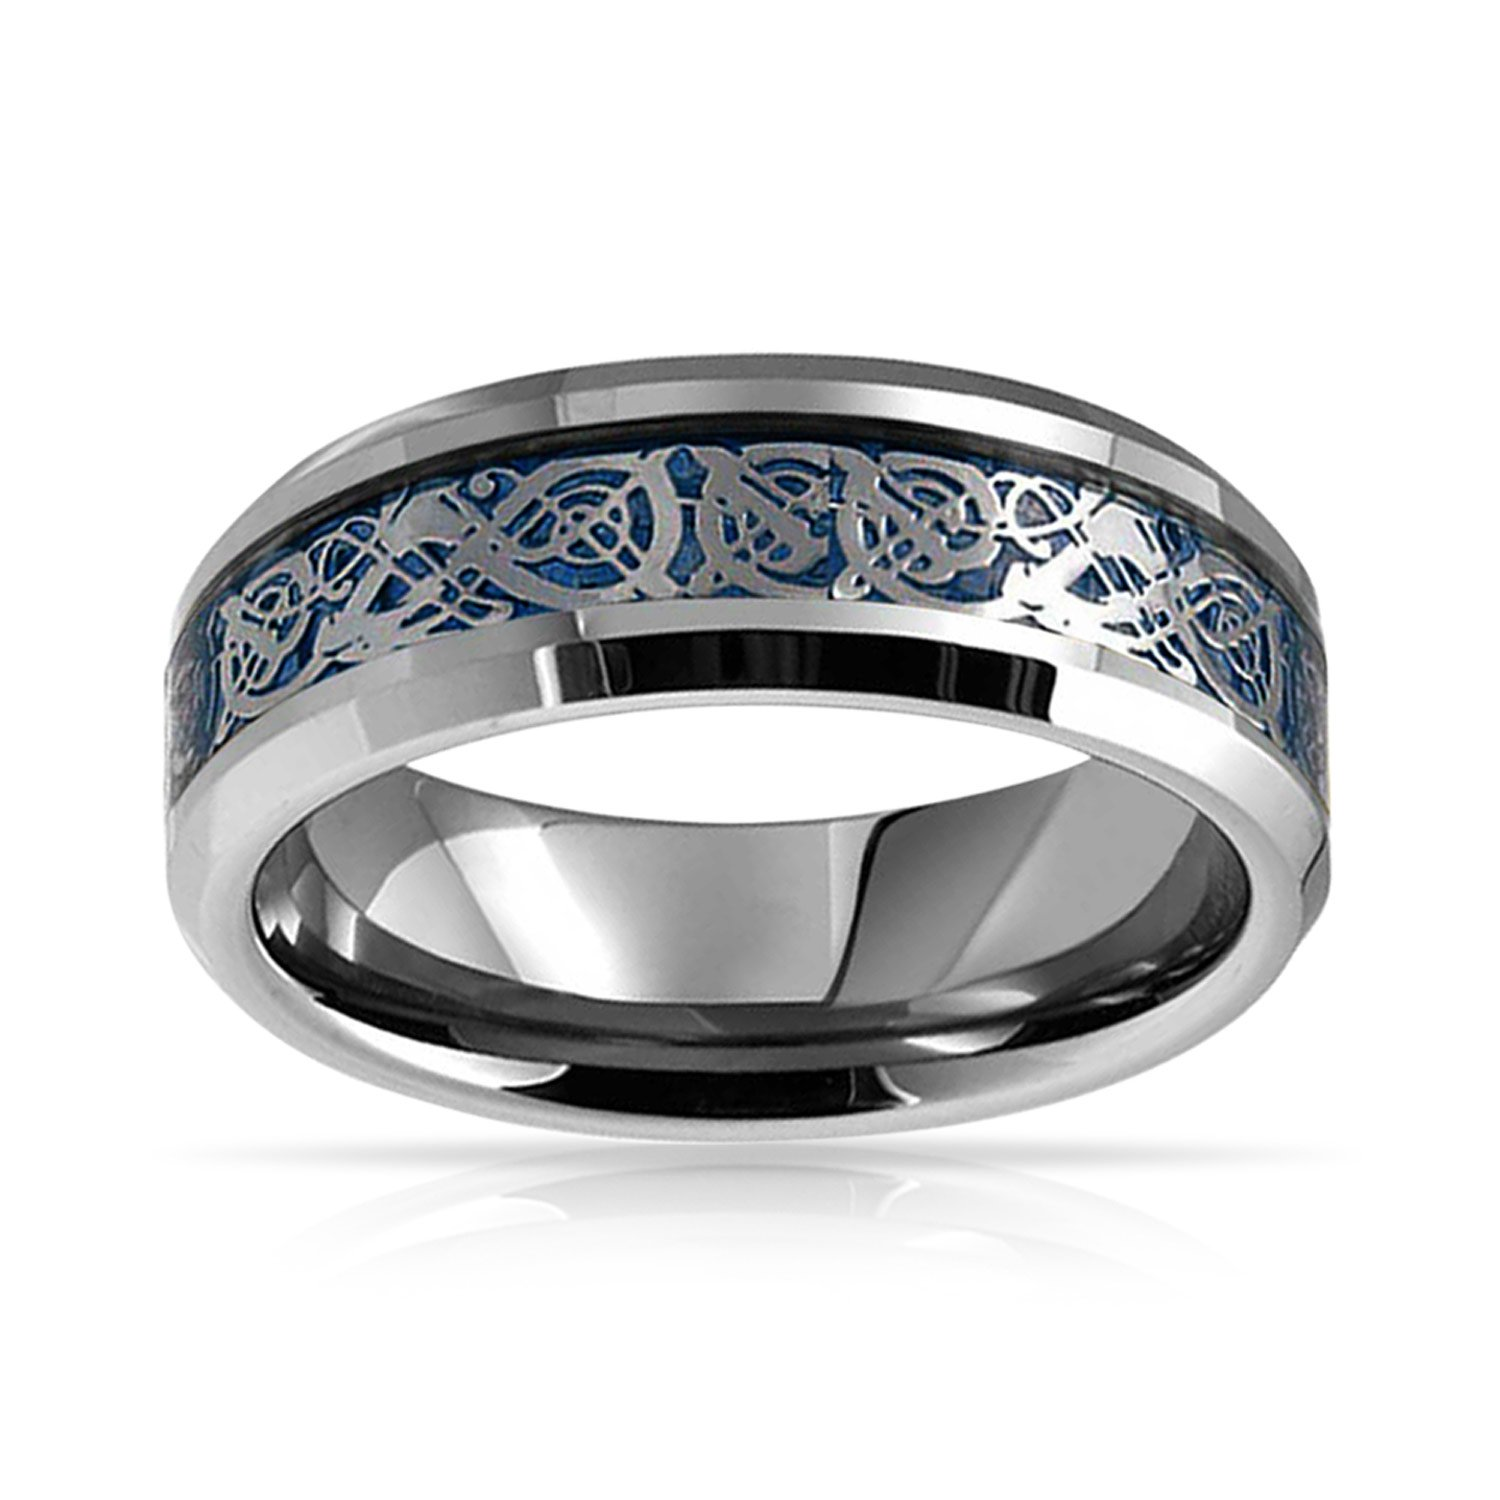 Bling Jewelry Blue Silver Tone Celtic Knot Dragon Inlay Couples Titanium Wedding Band Rings/for/Men for Women Comfort Fit 8MM